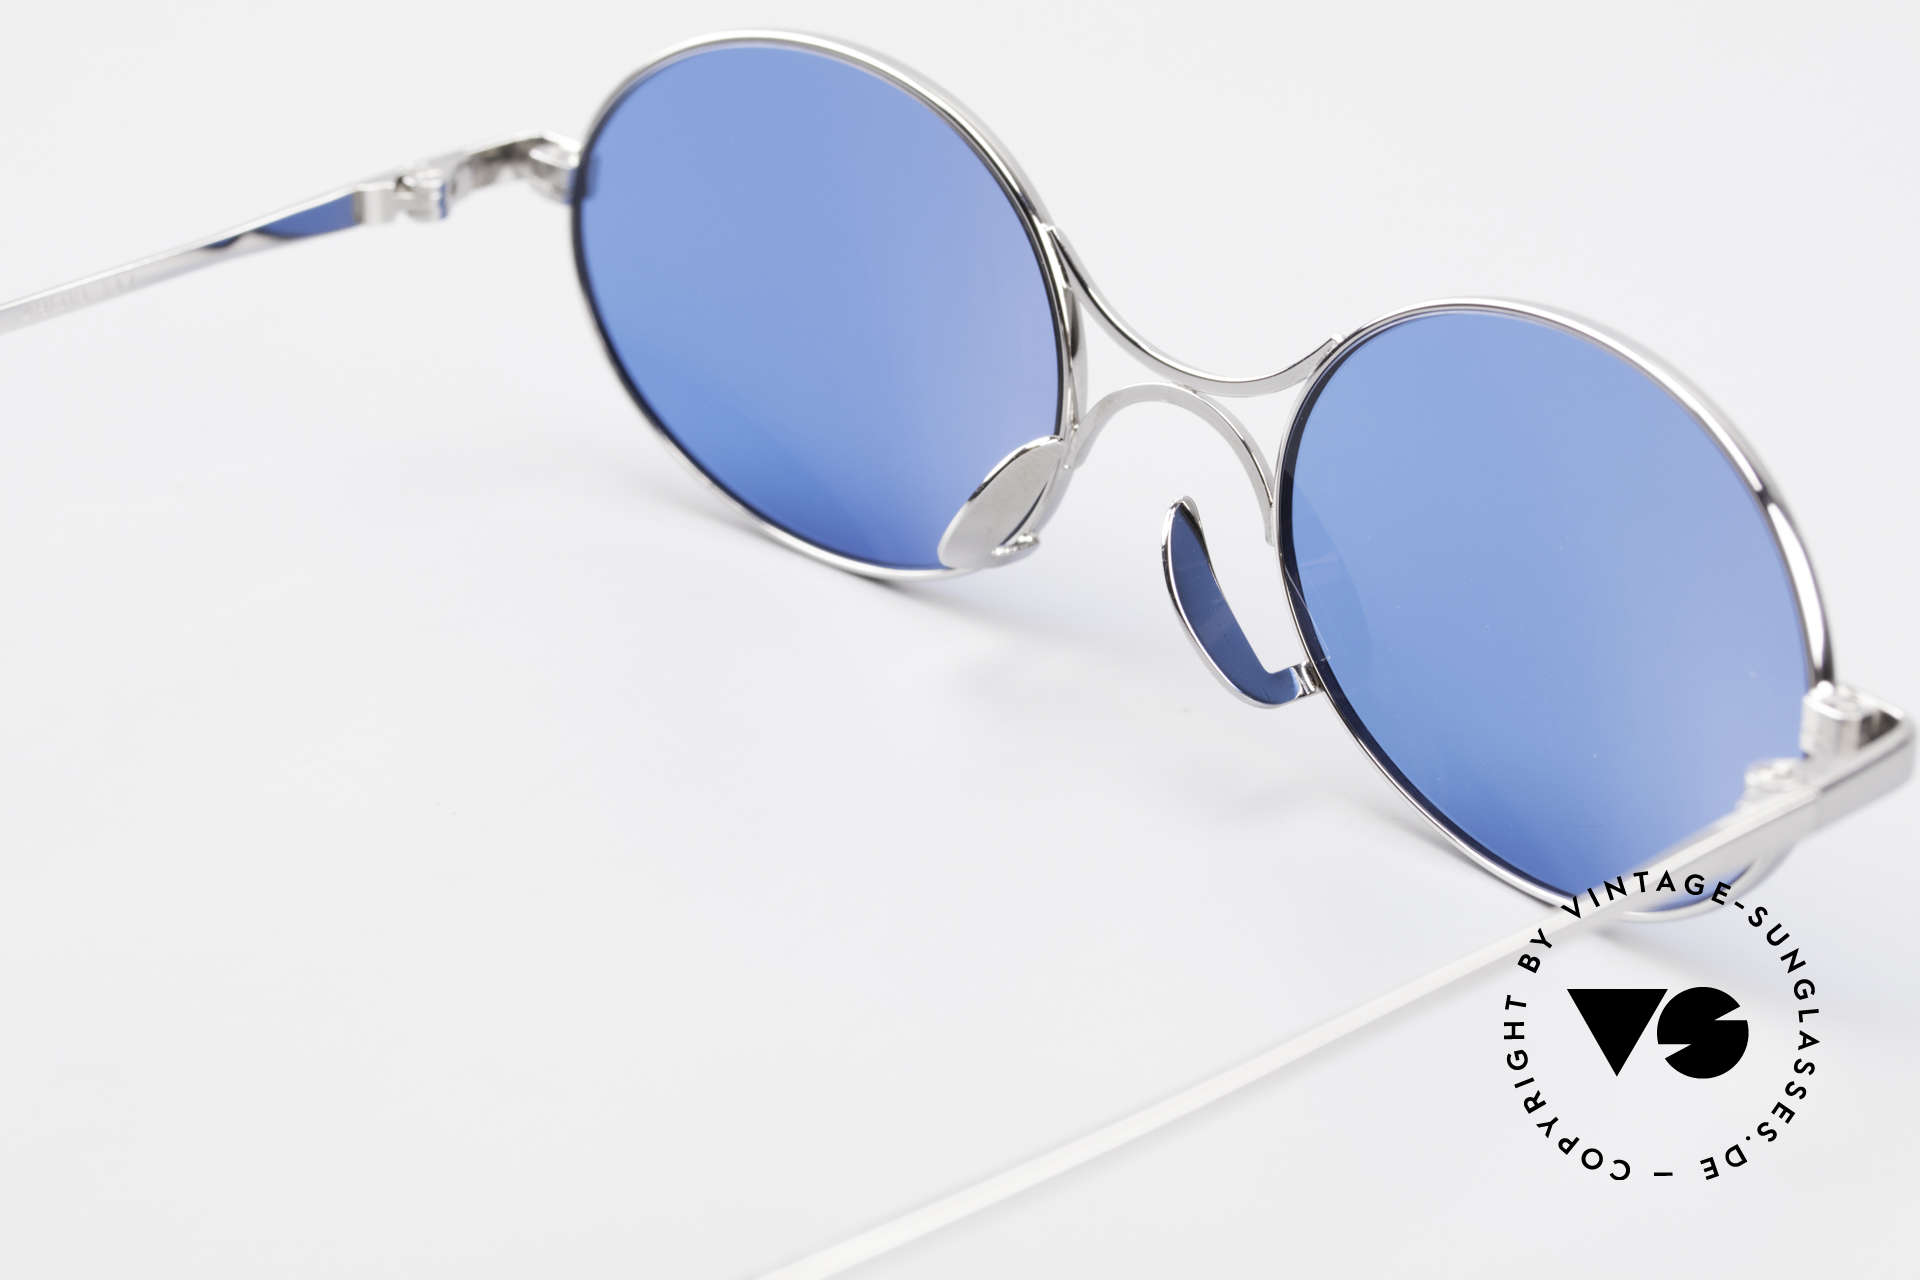 Jean Paul Gaultier 55-0173 Oval JPG Designer Sunglasses, Size: small, Made for Men and Women